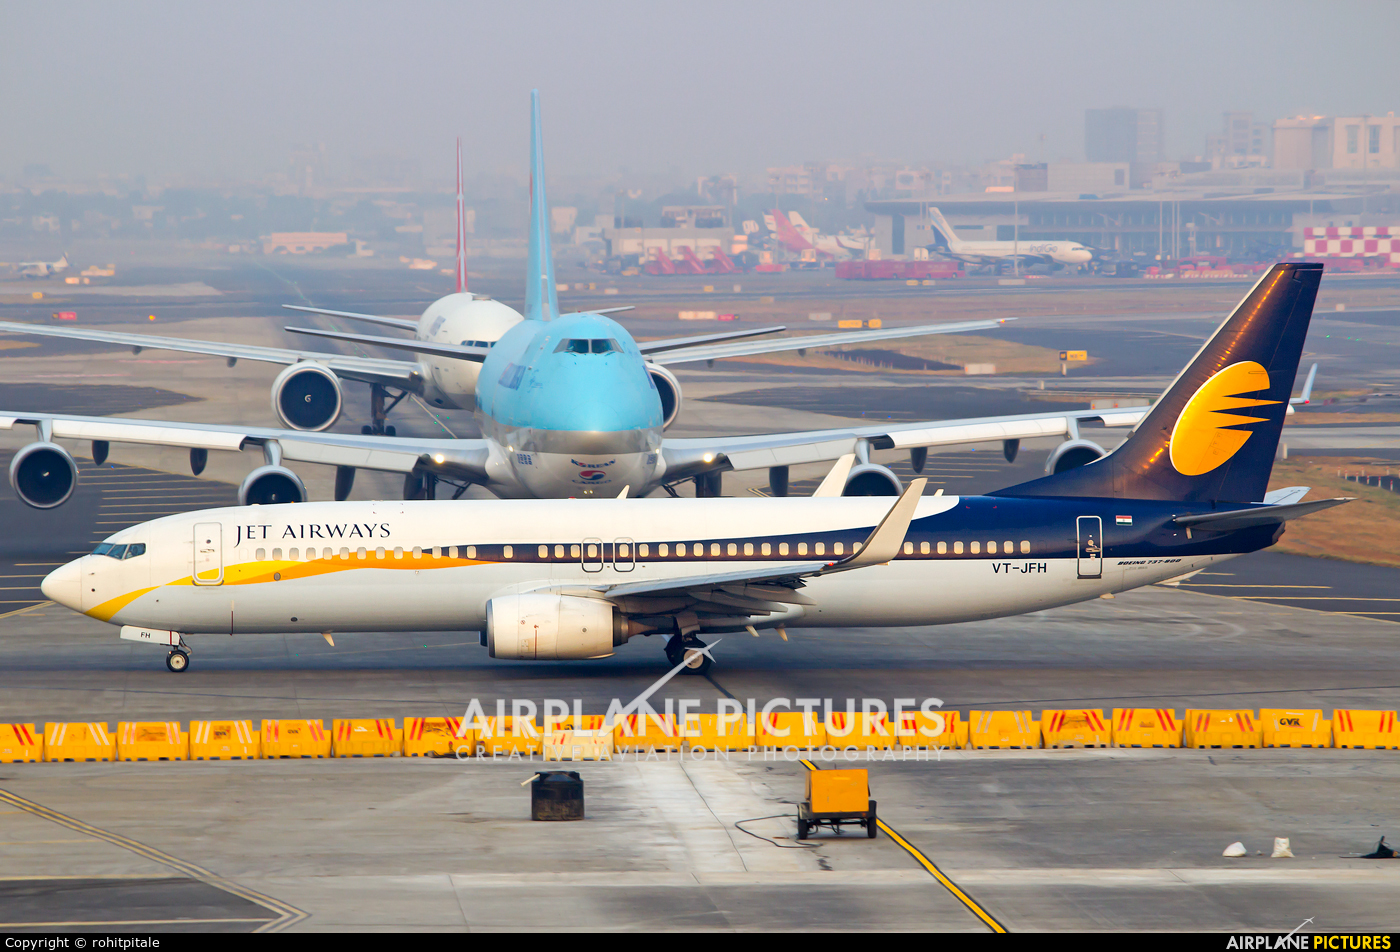 Jet Airways VT-JFH aircraft at Mumbai - Chhatrapati Shivaji Intl